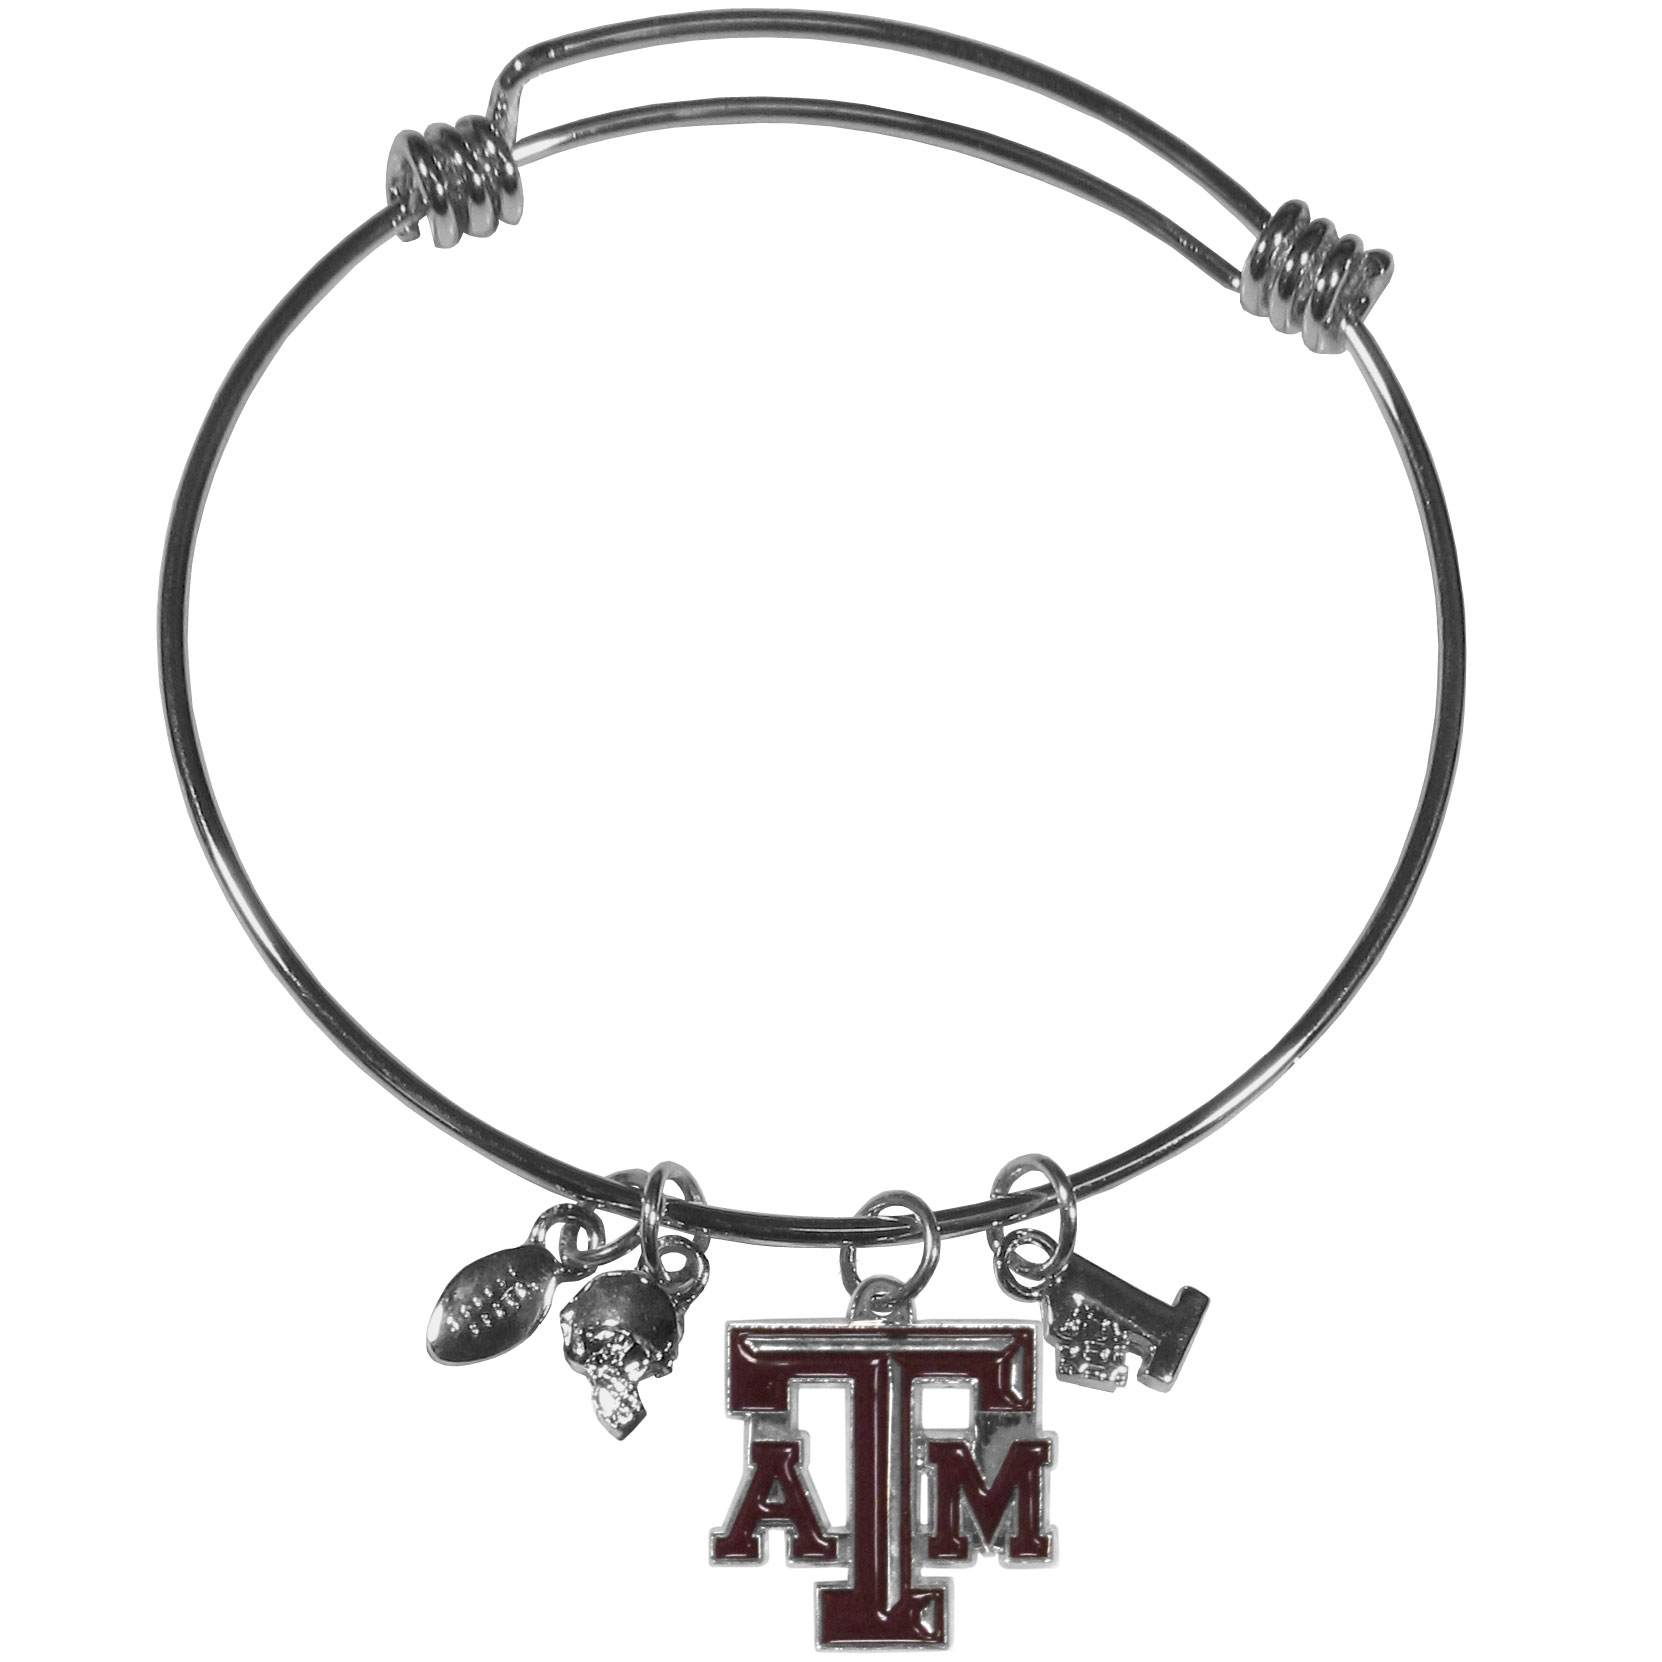 Texas A and M Aggies Charm Bangle Bracelet - Adjustable wire bracelets are all the rage and this Texas A & M Aggies bracelet matches the popular trend with your beloved team. The bracelet features 4 charms in total, each feature exceptional detail and the team charm has enameled team colors.